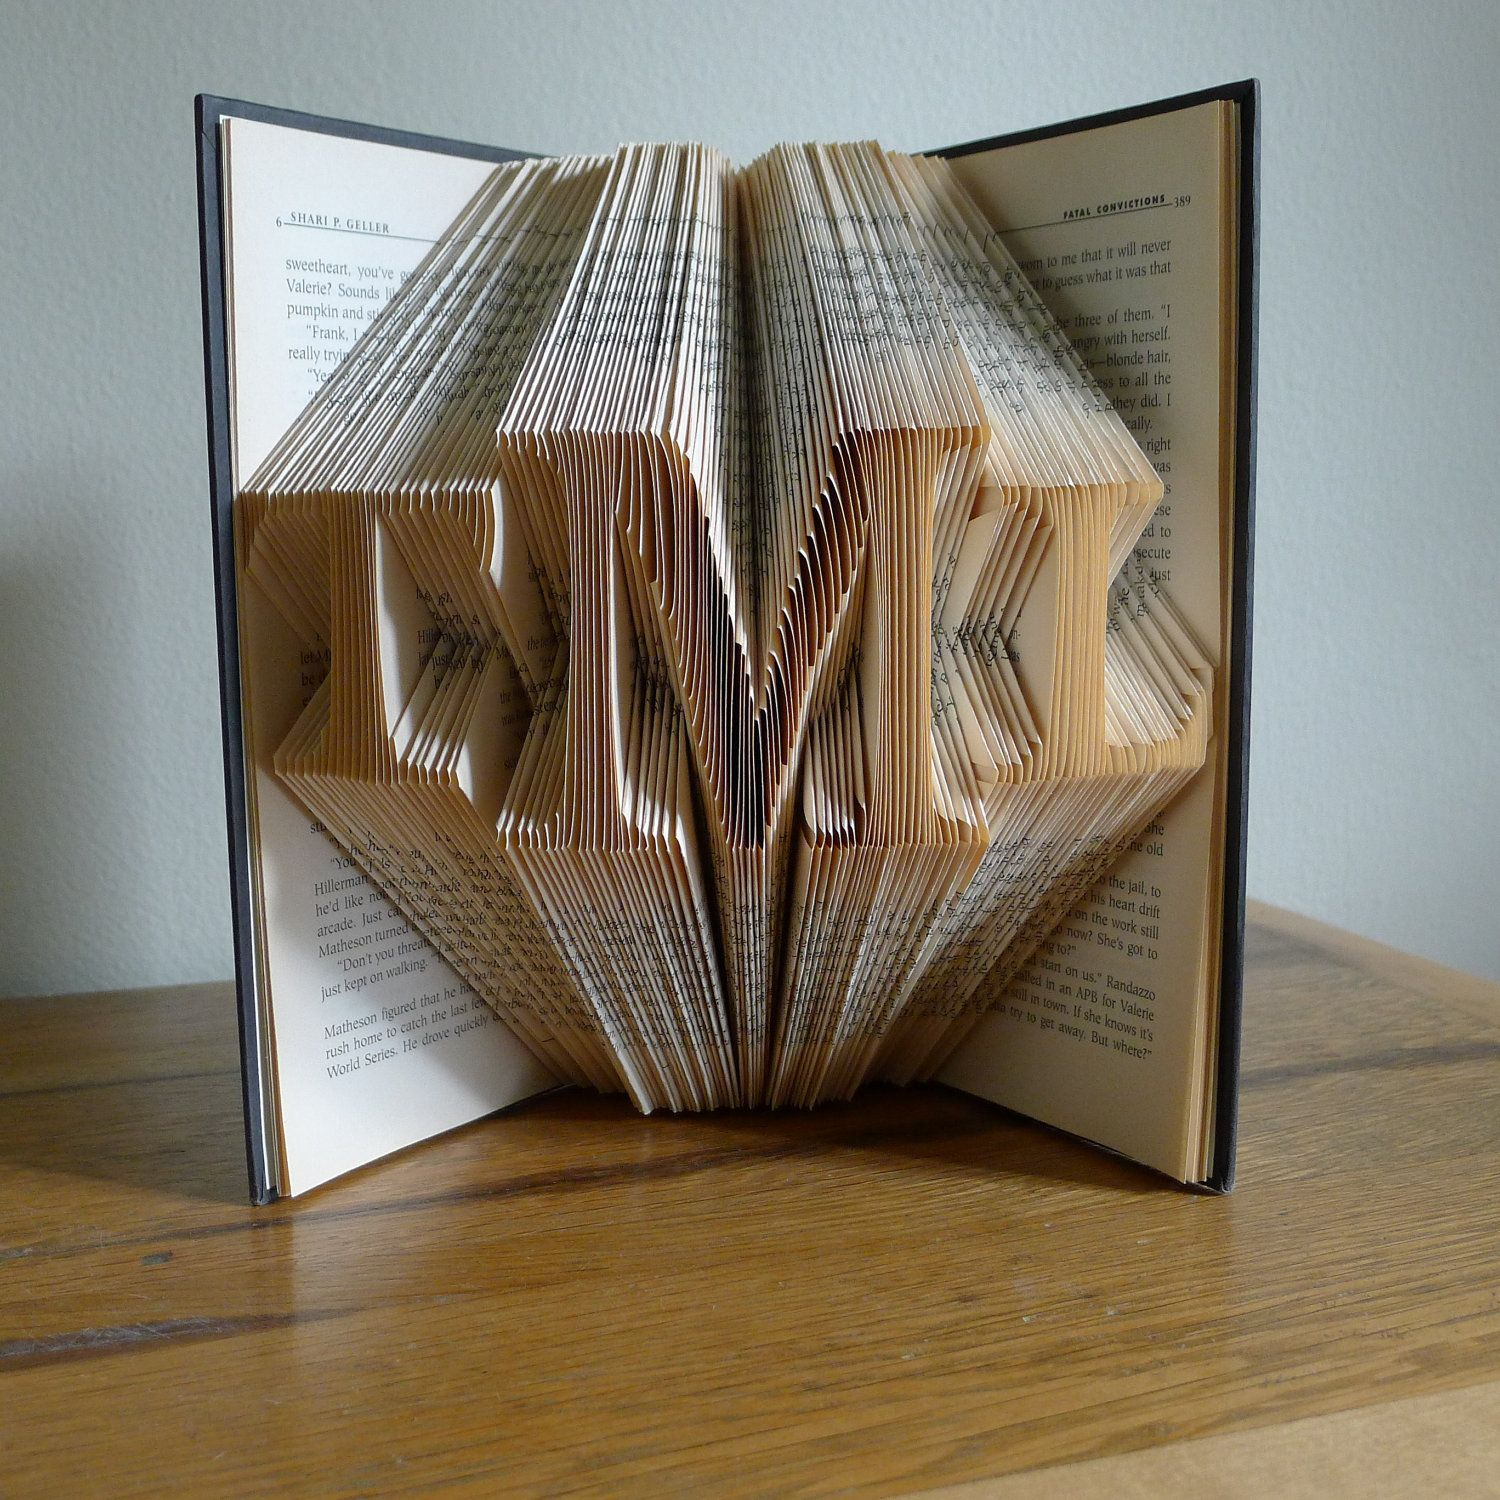 Wedding Present Personalized Gifts Monogrammed For Men Gift Her Boss Custom Folded Book Sculpture